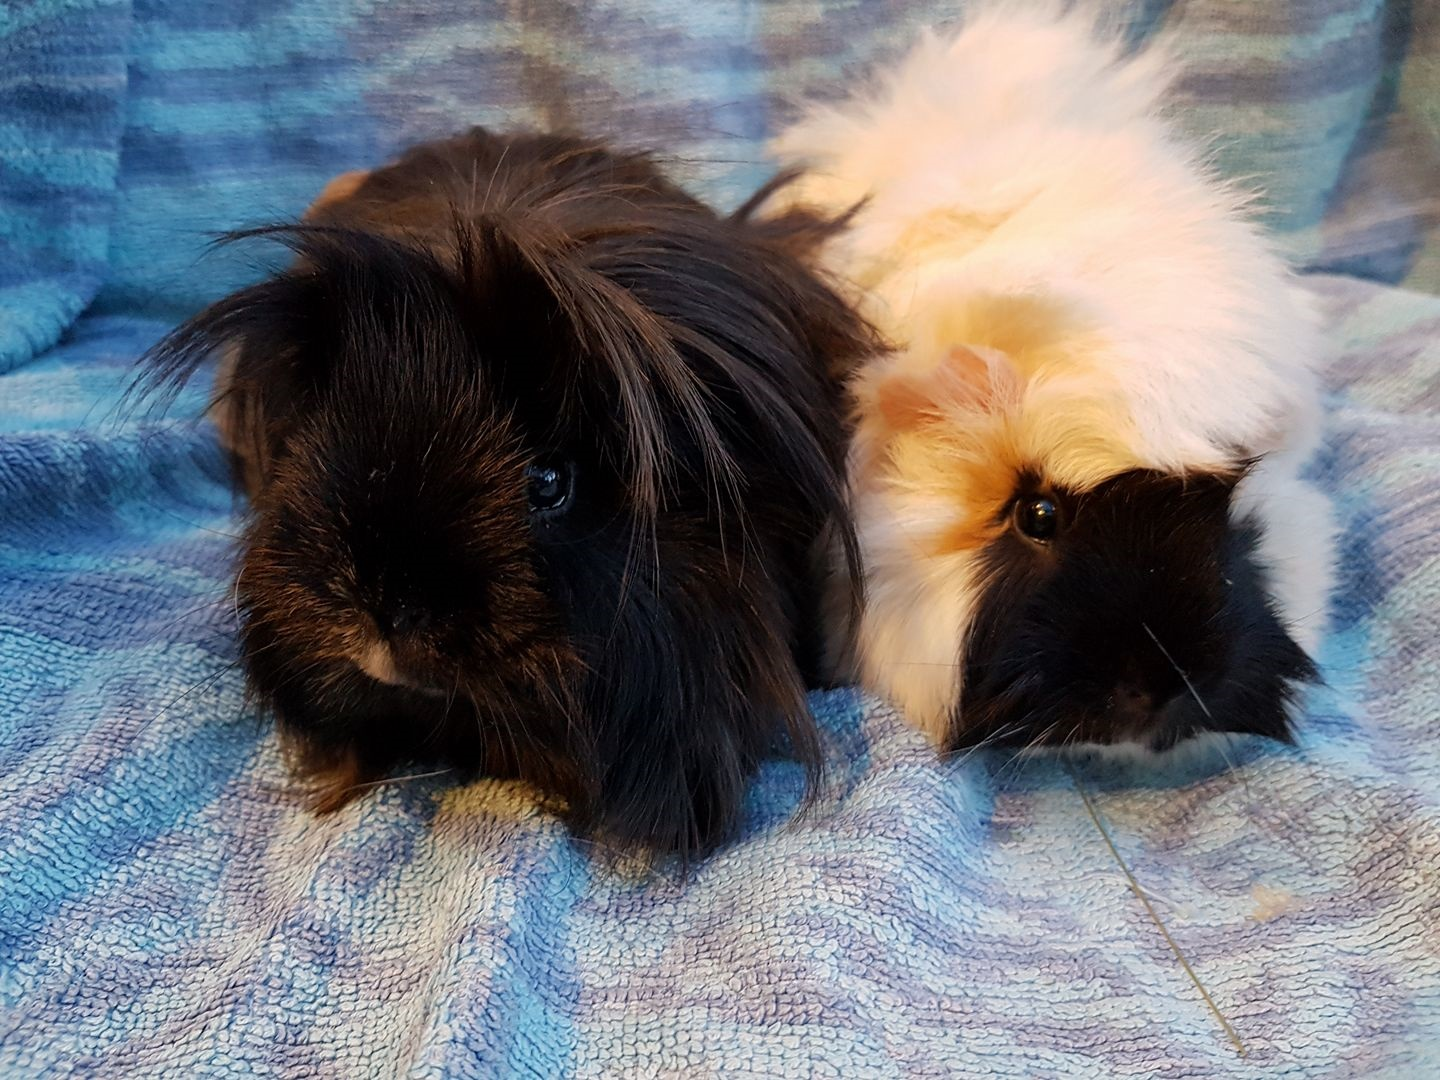 Penelope & Pippins April 21st 2018